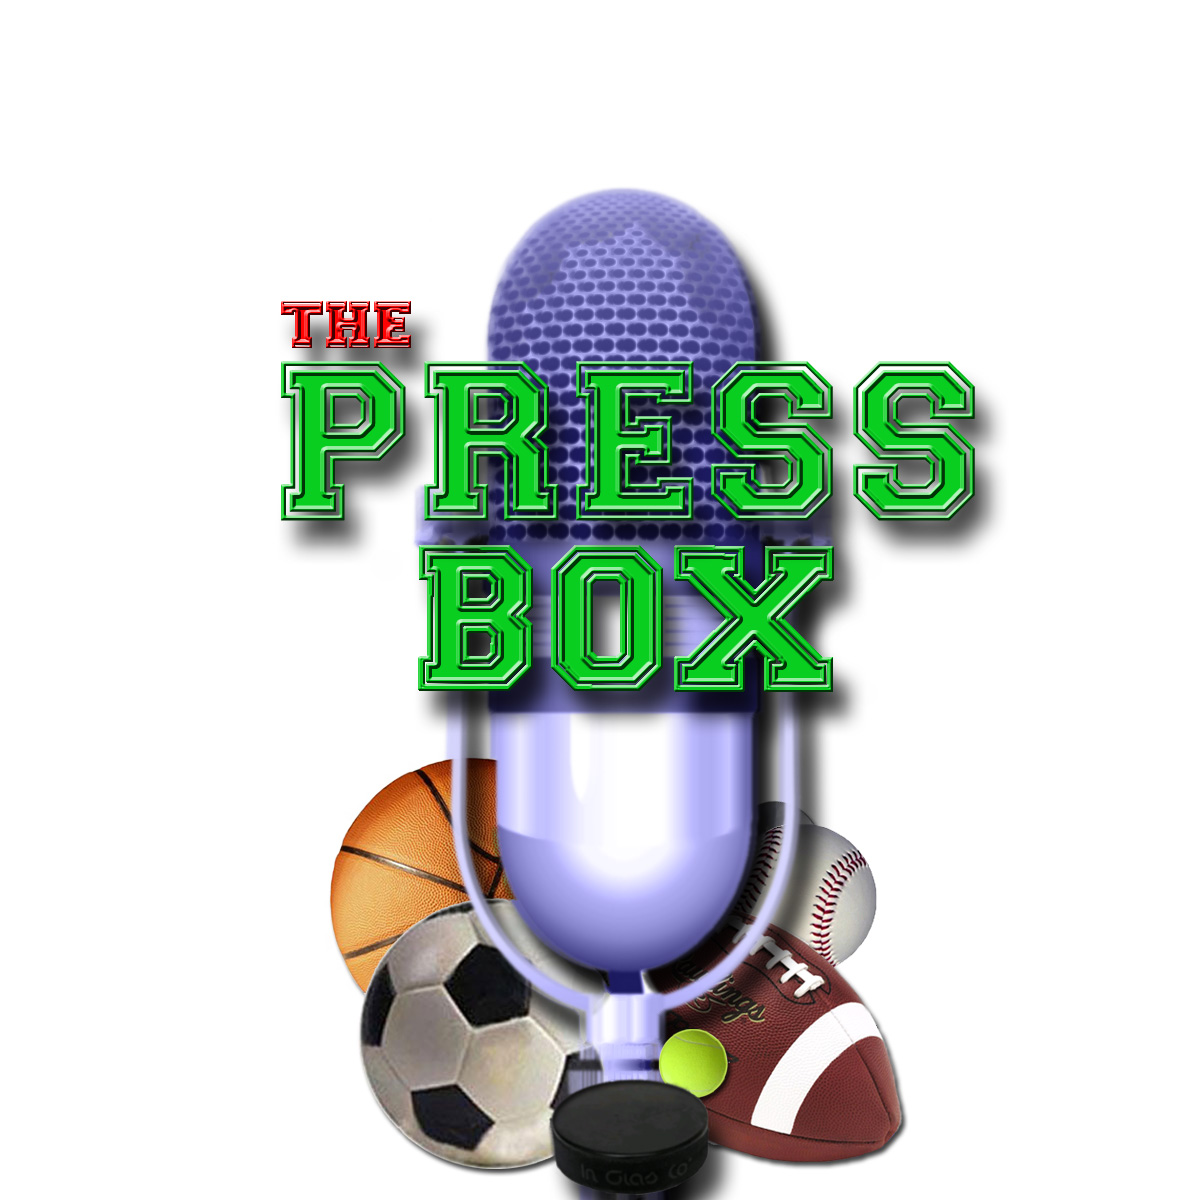 PRESS BOX SPORTS EMPORIUM INC